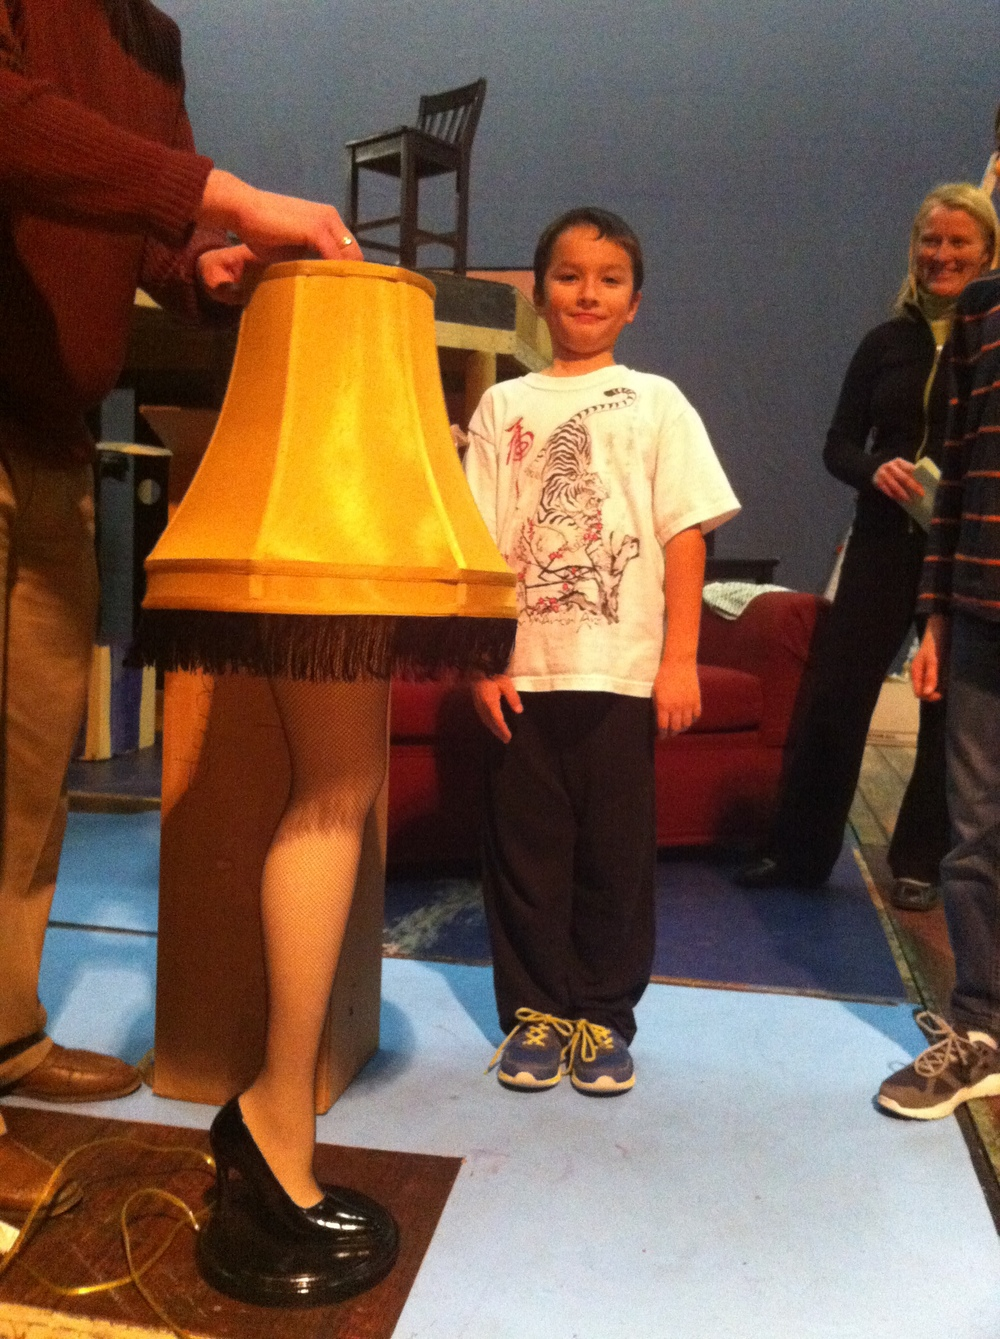 Waylan Parsell with the FRAGILE leg lamp!